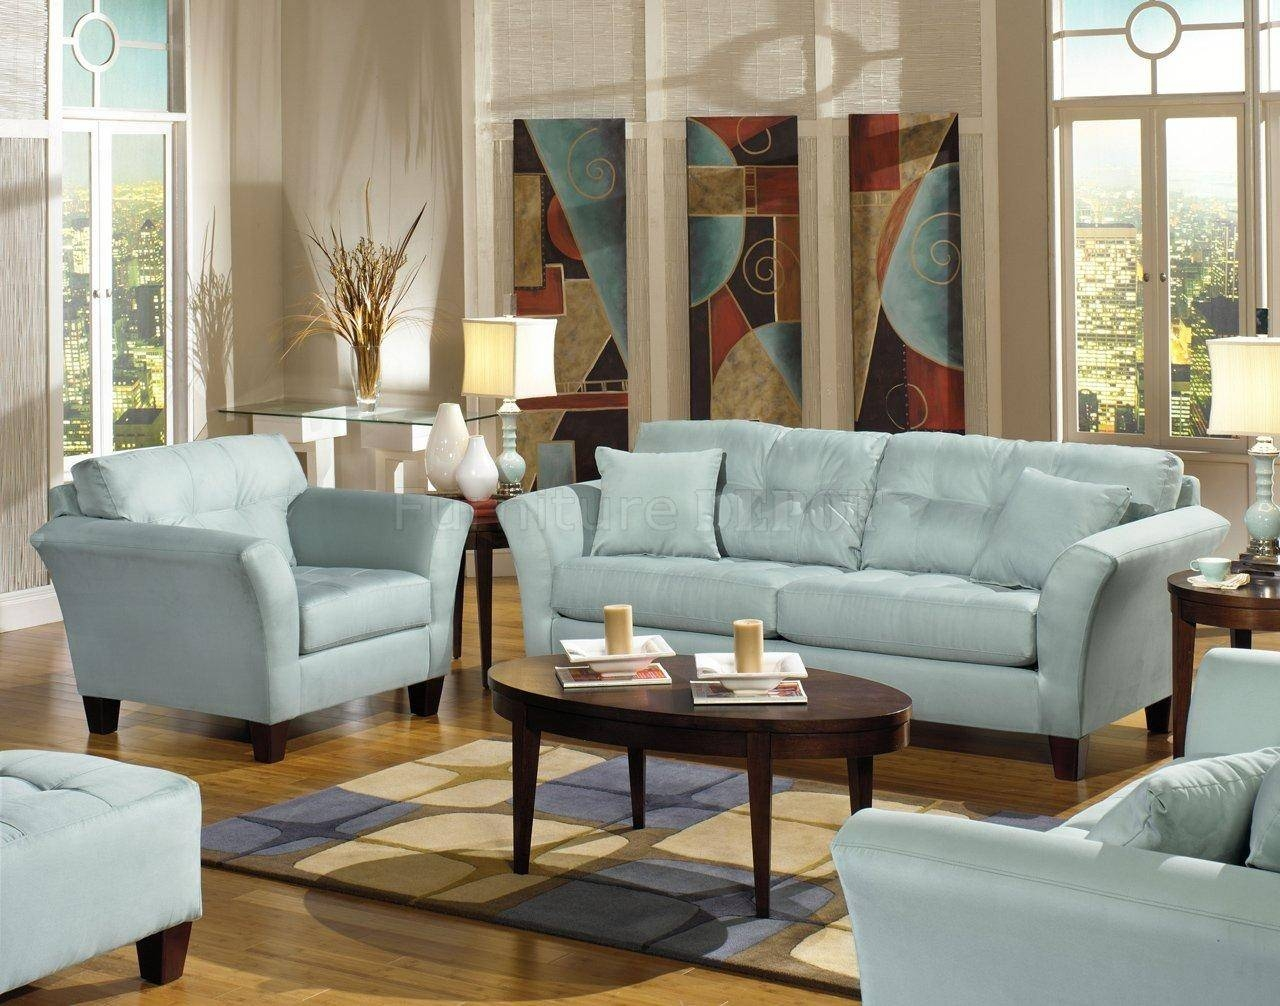 20 Best Sky Blue Sofas | Sofa Ideas regarding Sky Blue Sofas (Image 1 of 15)